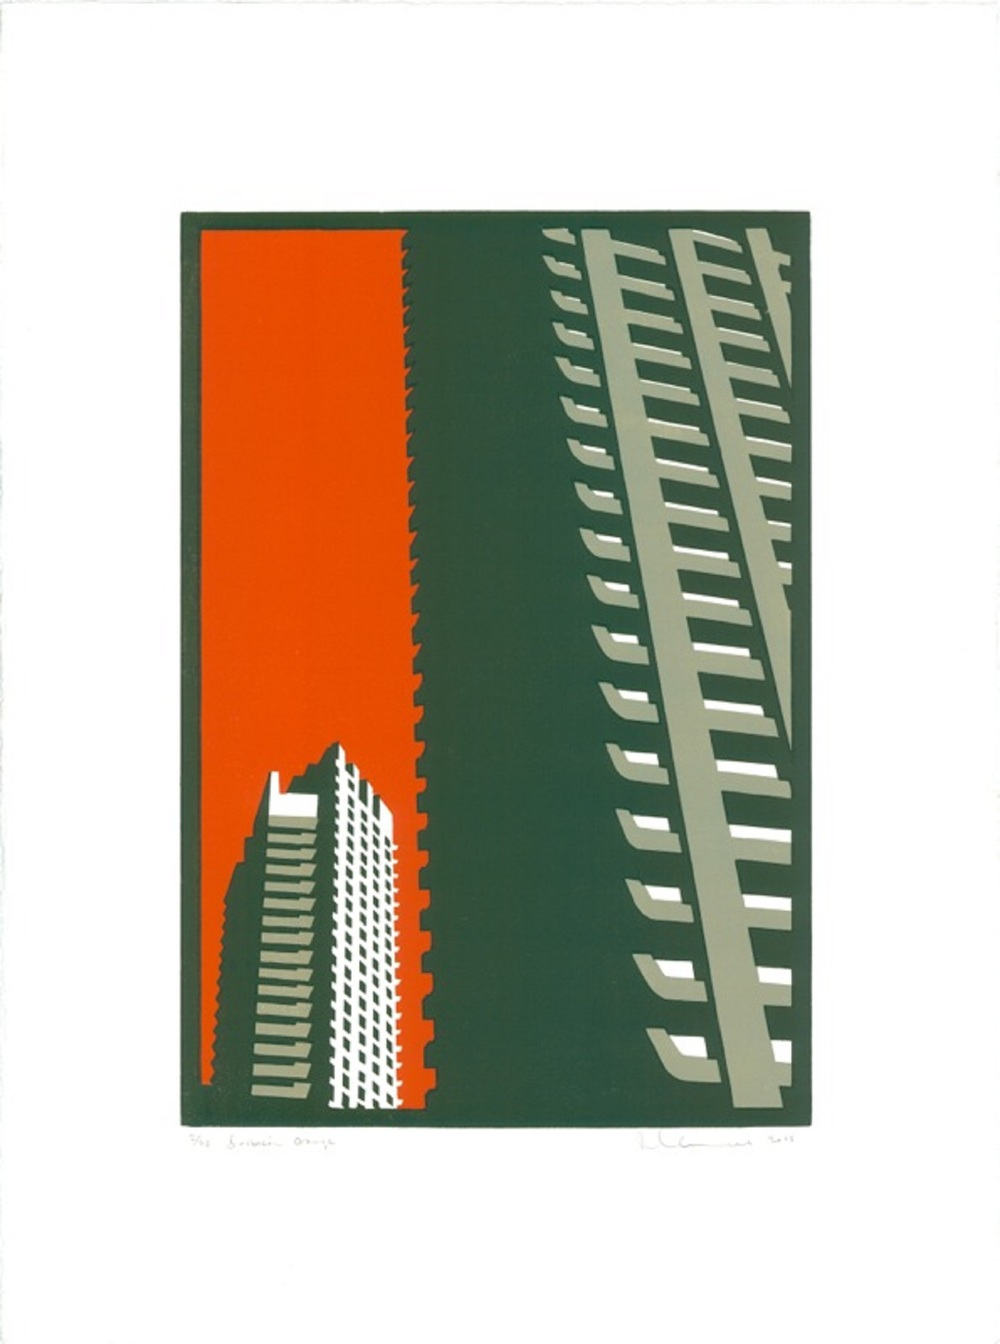 Barbican Orange linocut 52 x 35 cm £425 (unframed)